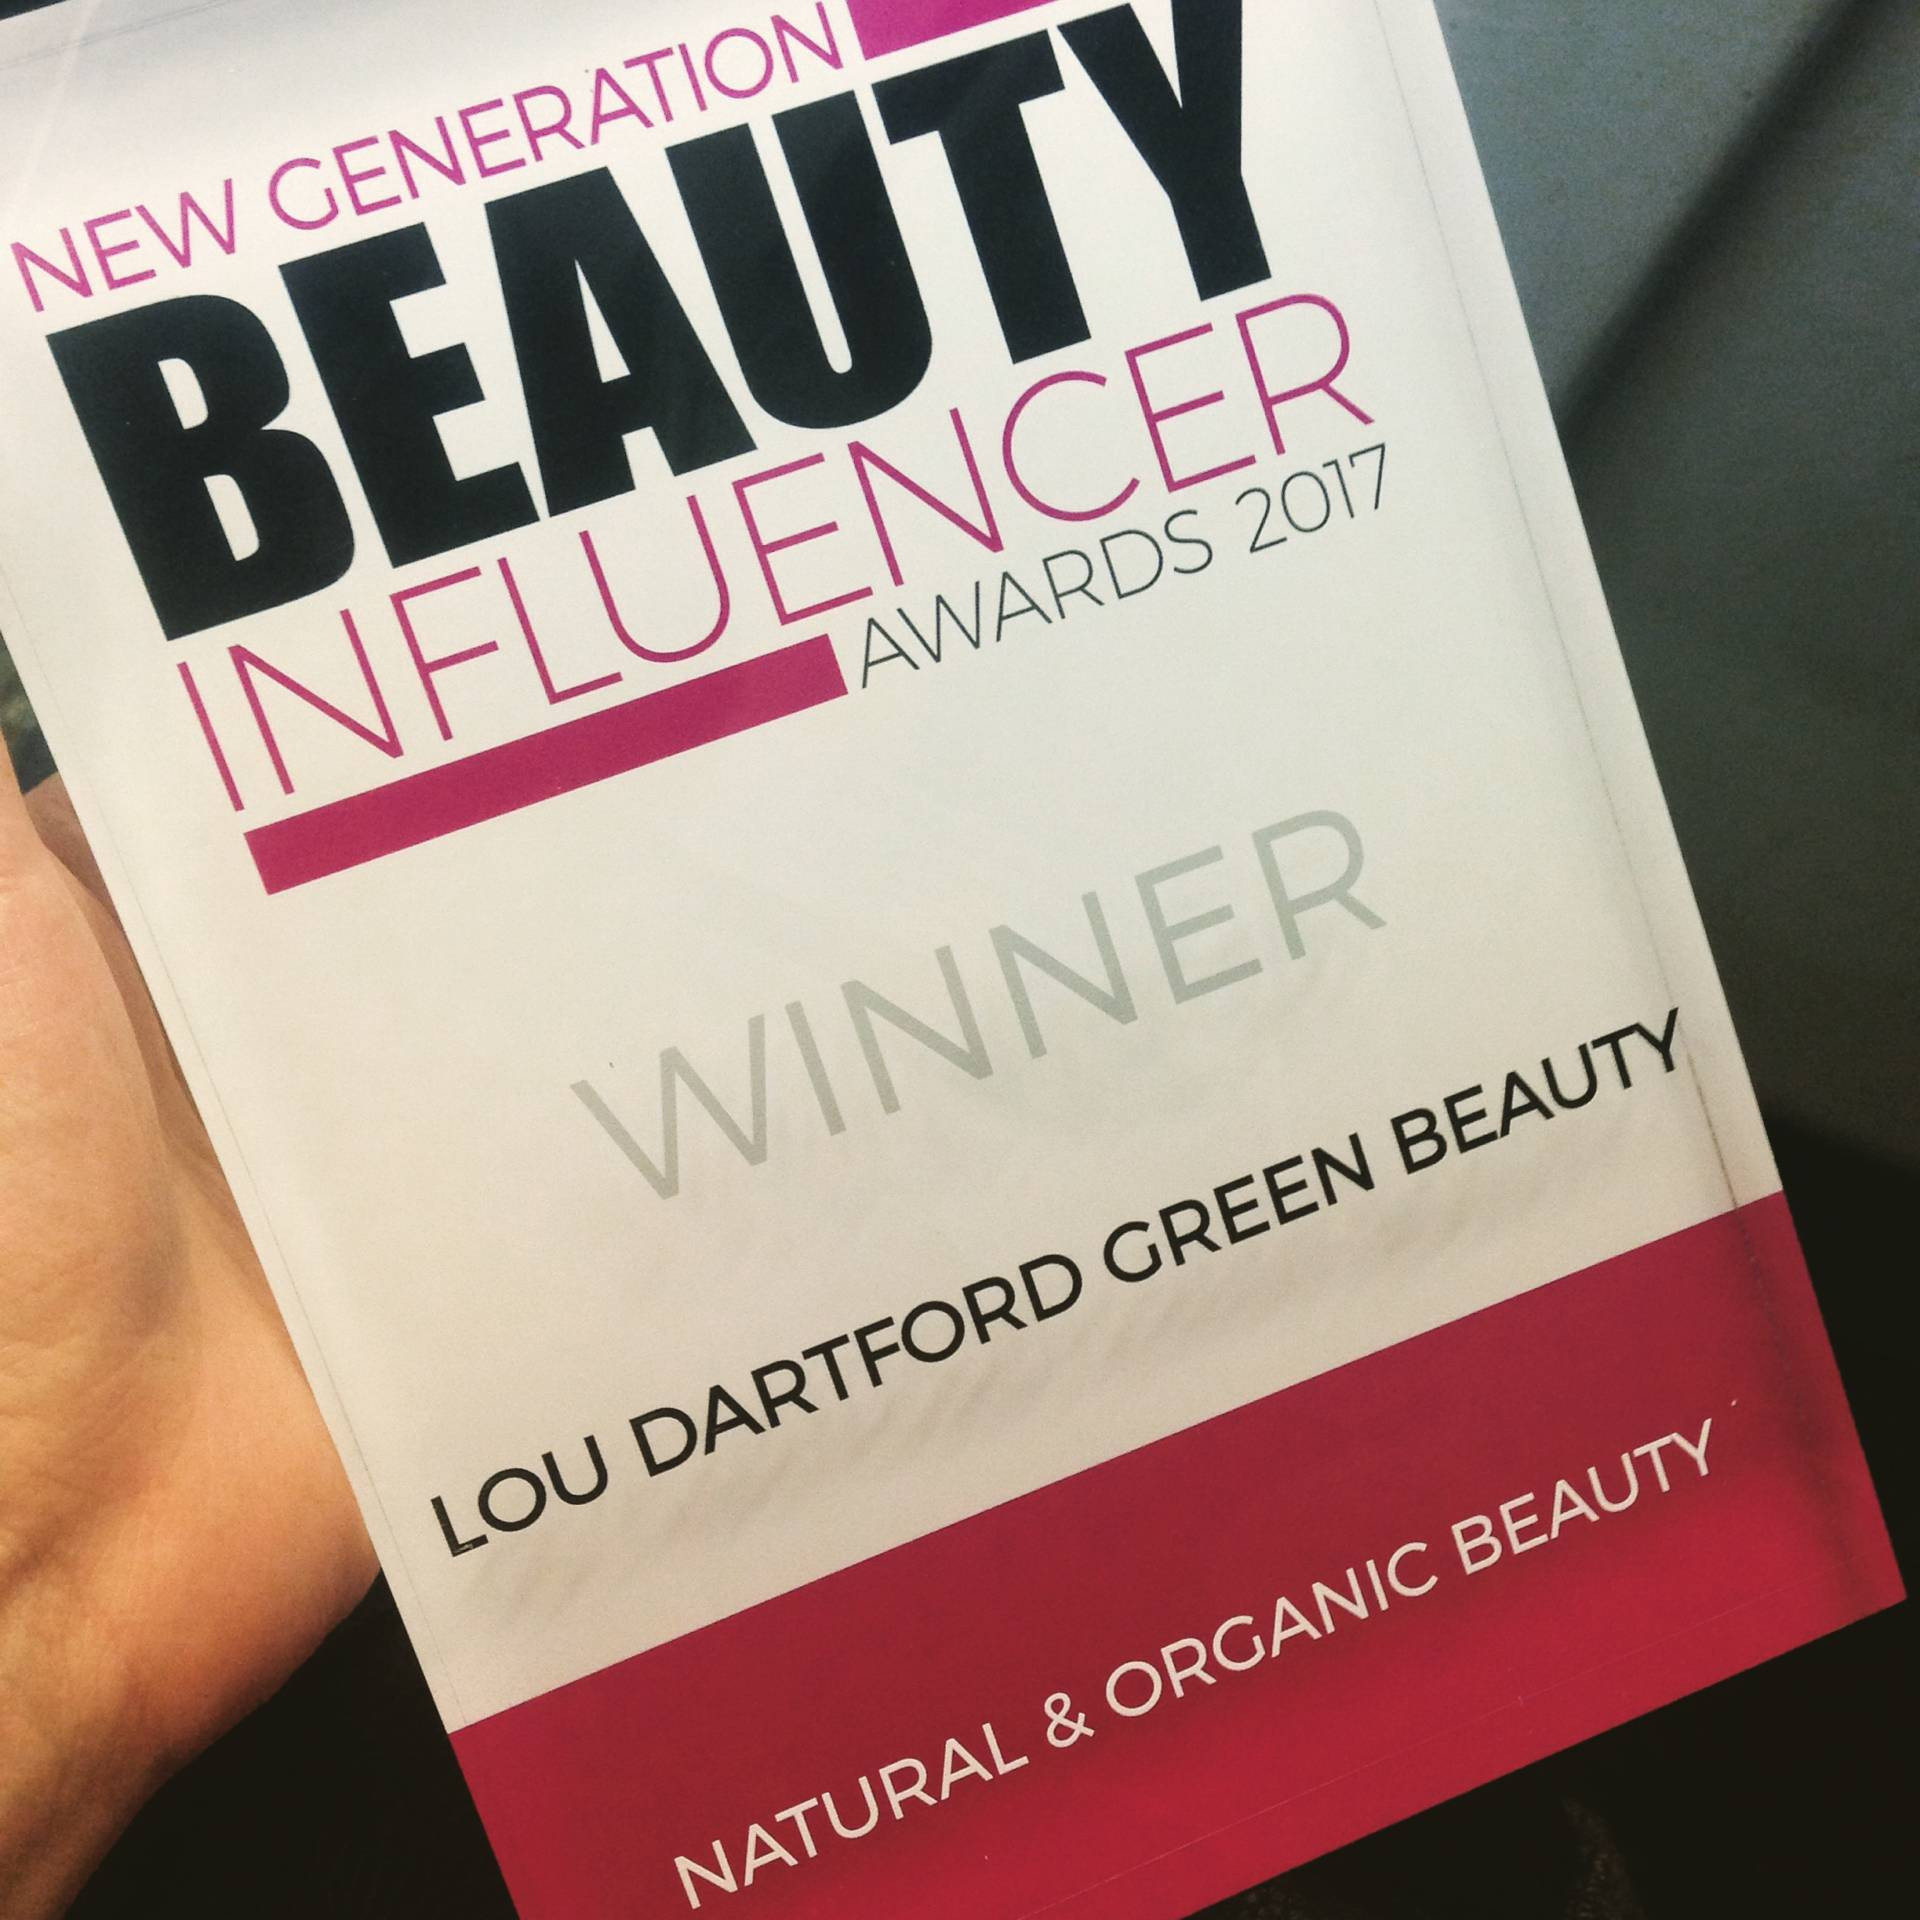 New Generation Beauty Influencer Award